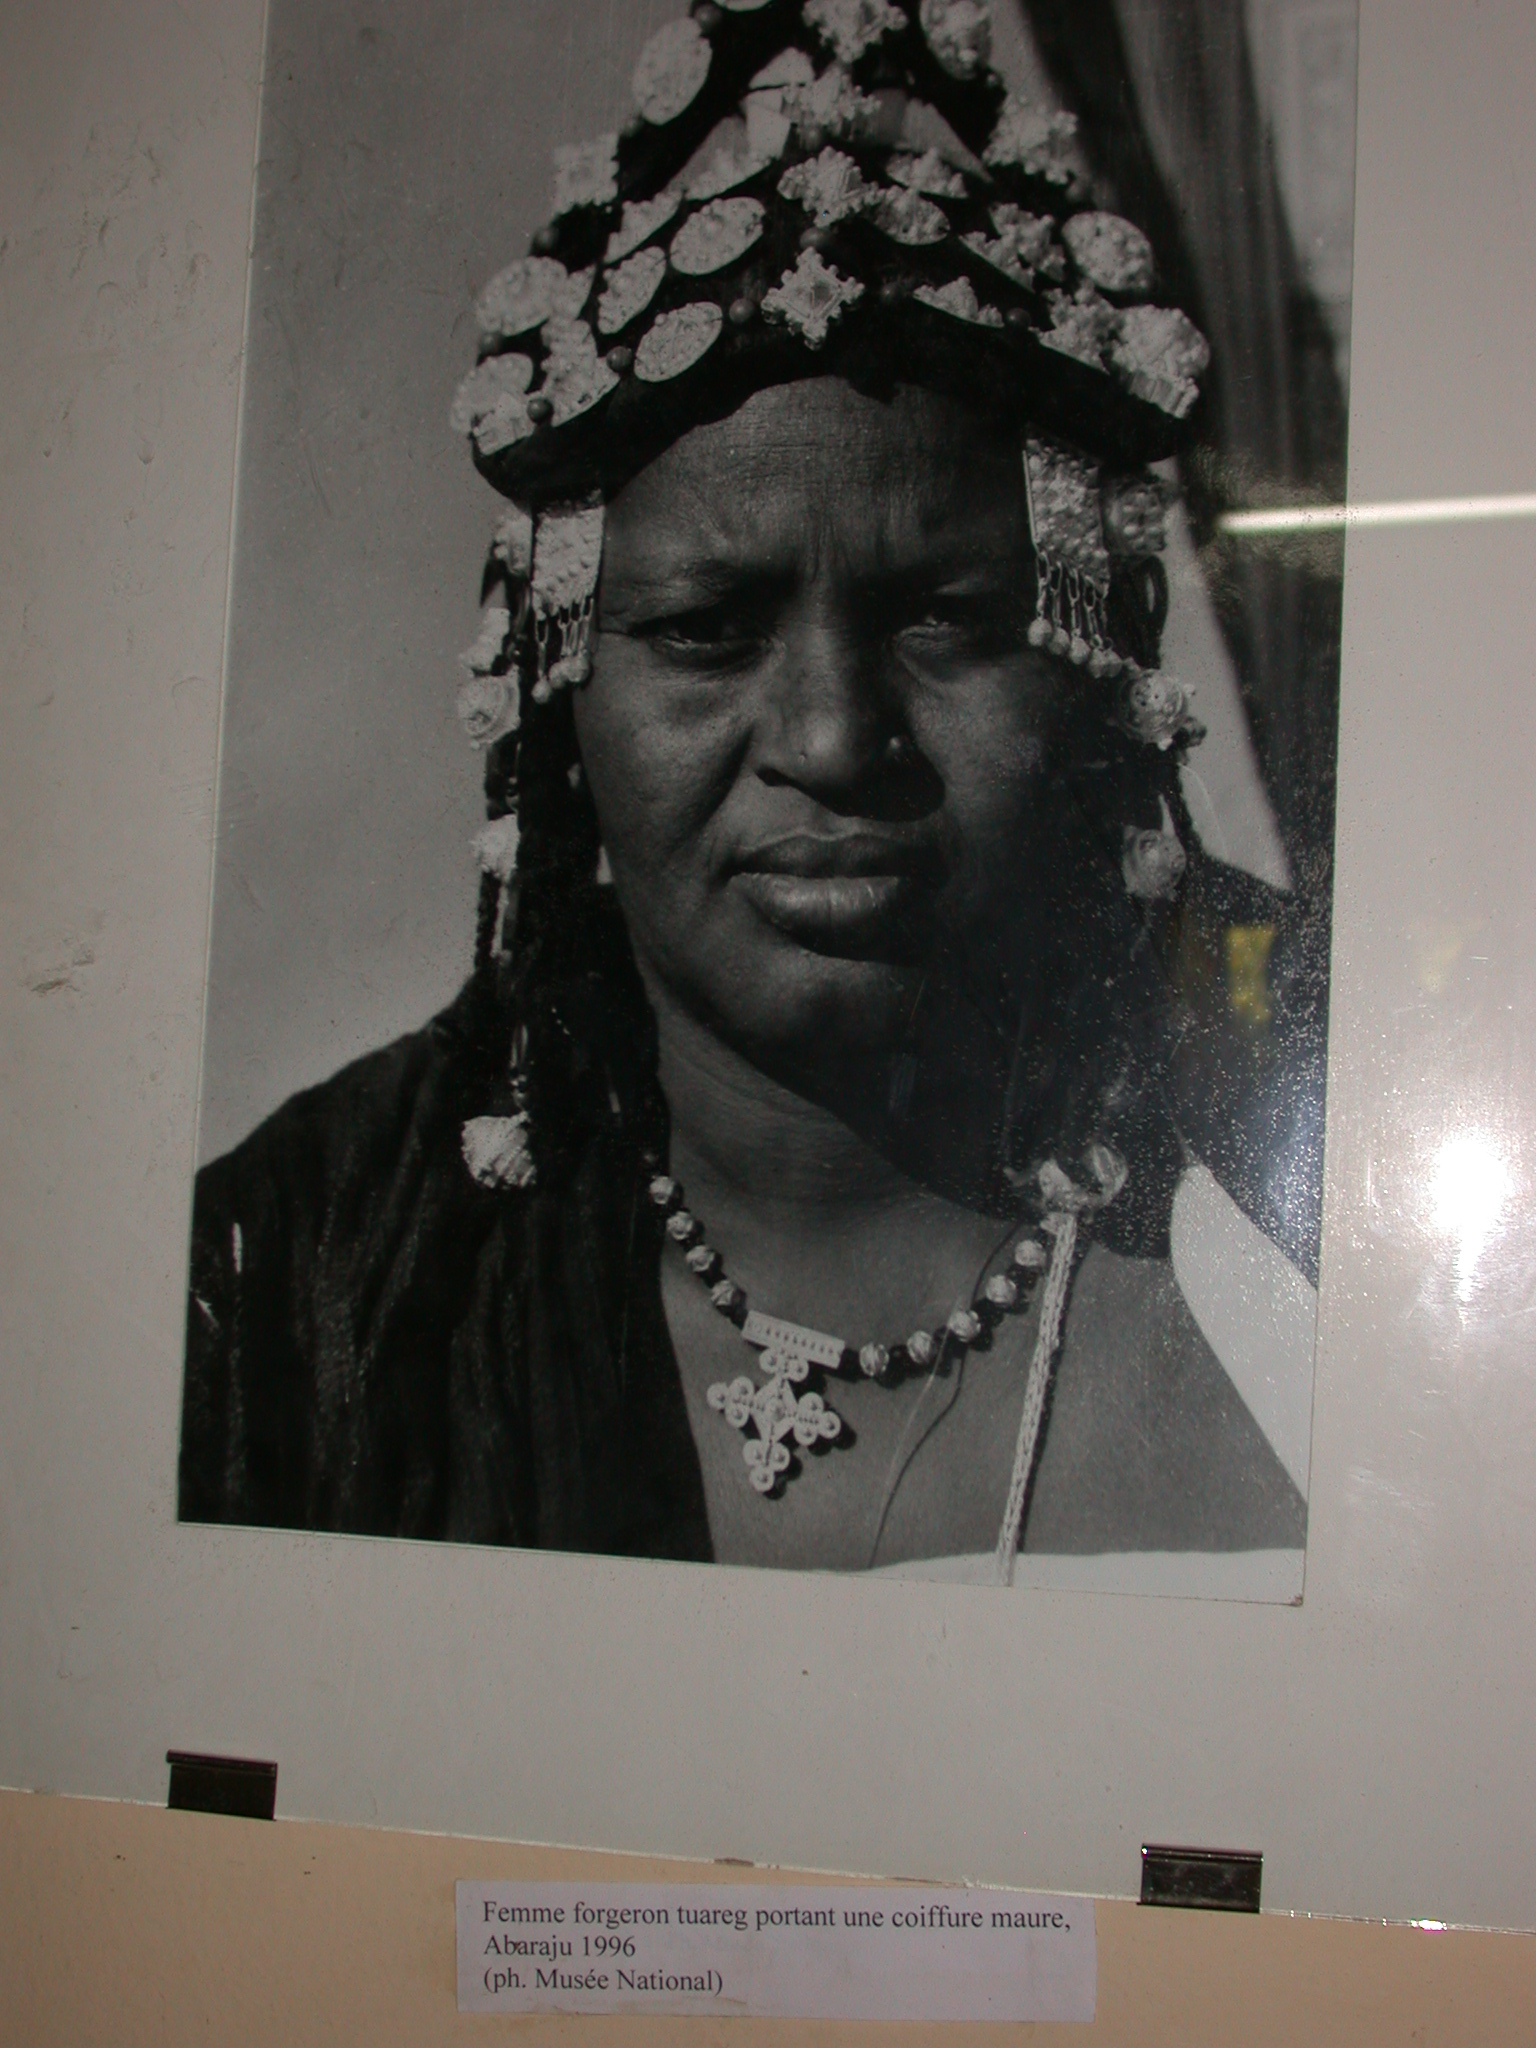 Photo of Tuareg Blacksmith Woman Wearing Moorish Headdress, Abaraju, 1996, Timbuktu Ethnological Museum, Timbuktu, Mali